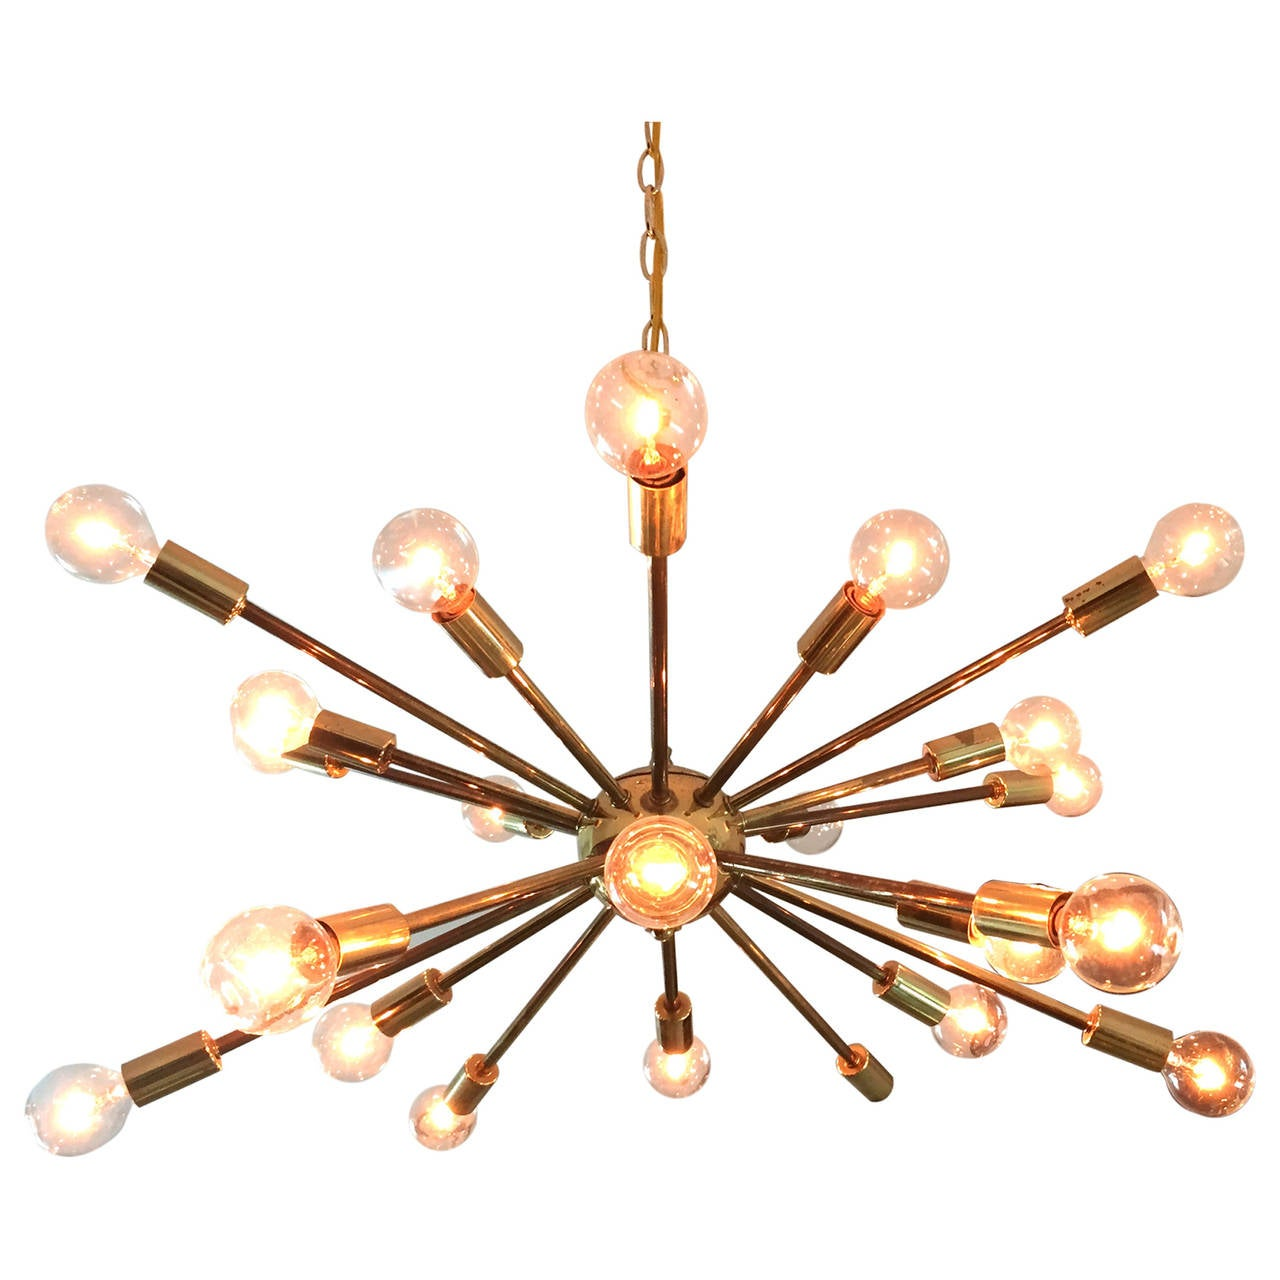 vintage american midcentury brass sputnik chandelier for. Black Bedroom Furniture Sets. Home Design Ideas